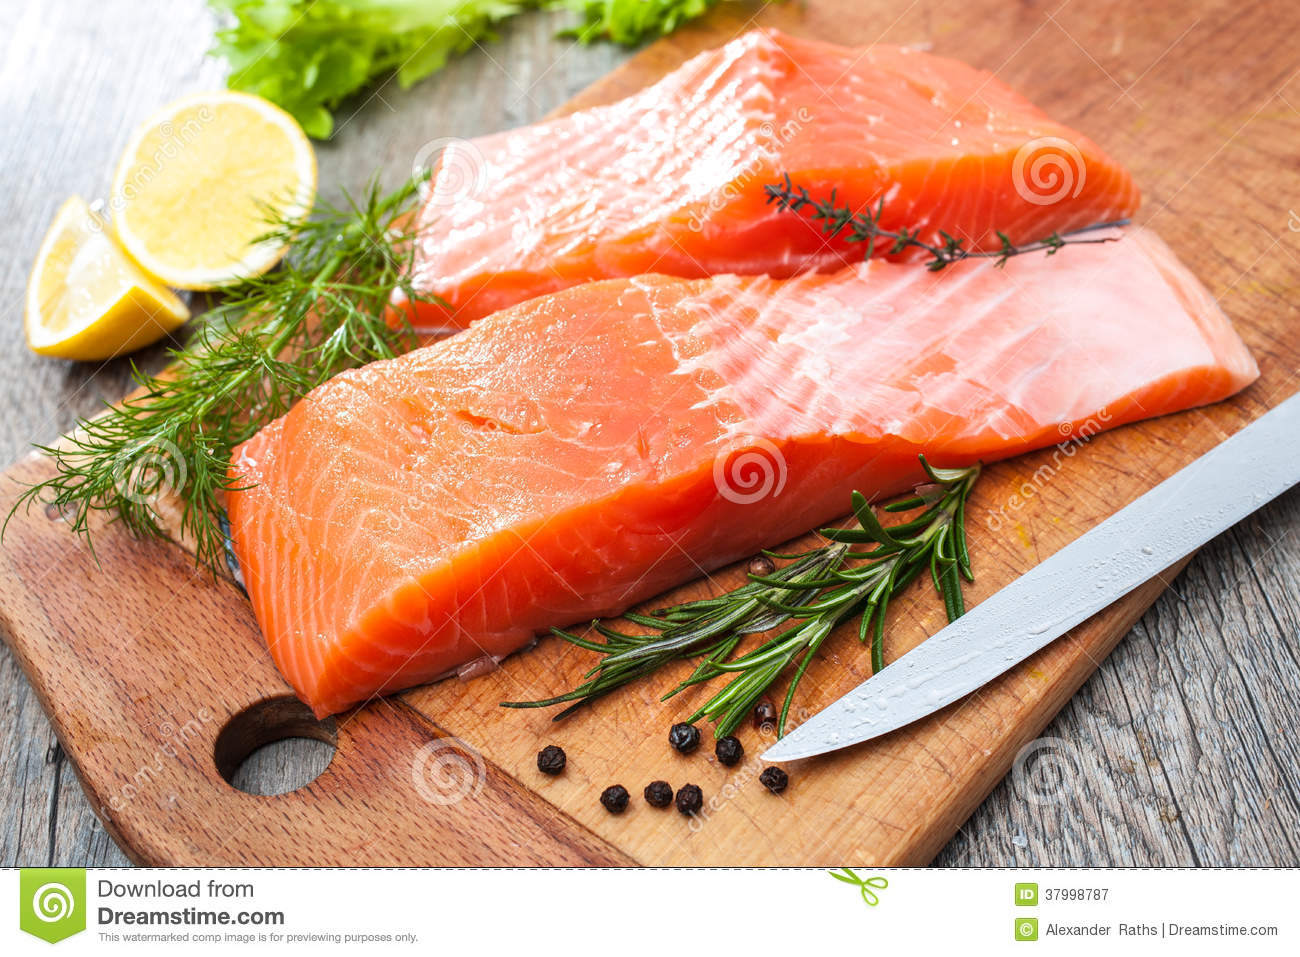 Different herbs royalty free stock image image 16265346 - Different Herbs Royalty Free Stock Image Image 16265346 Raw Salmon Fish Fillet With Fresh Herbs Download